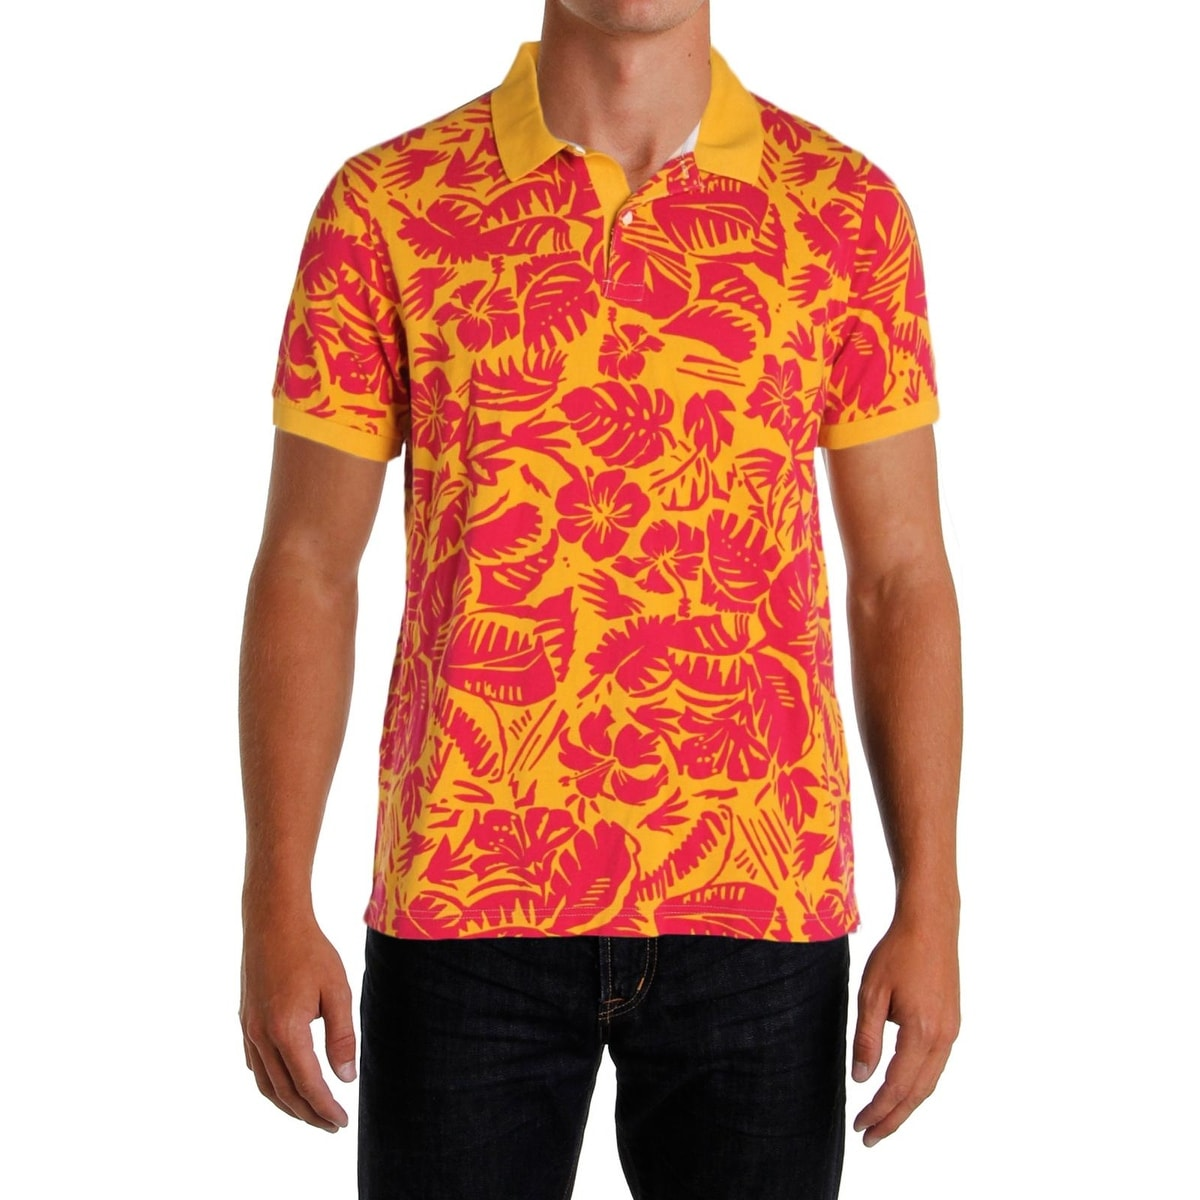 dee2acac Shop Tommy Hilfiger Mens Polo Shirt Polo Hawaiian Print - XL - Free  Shipping On Orders Over $45 - Overstock - 22581646